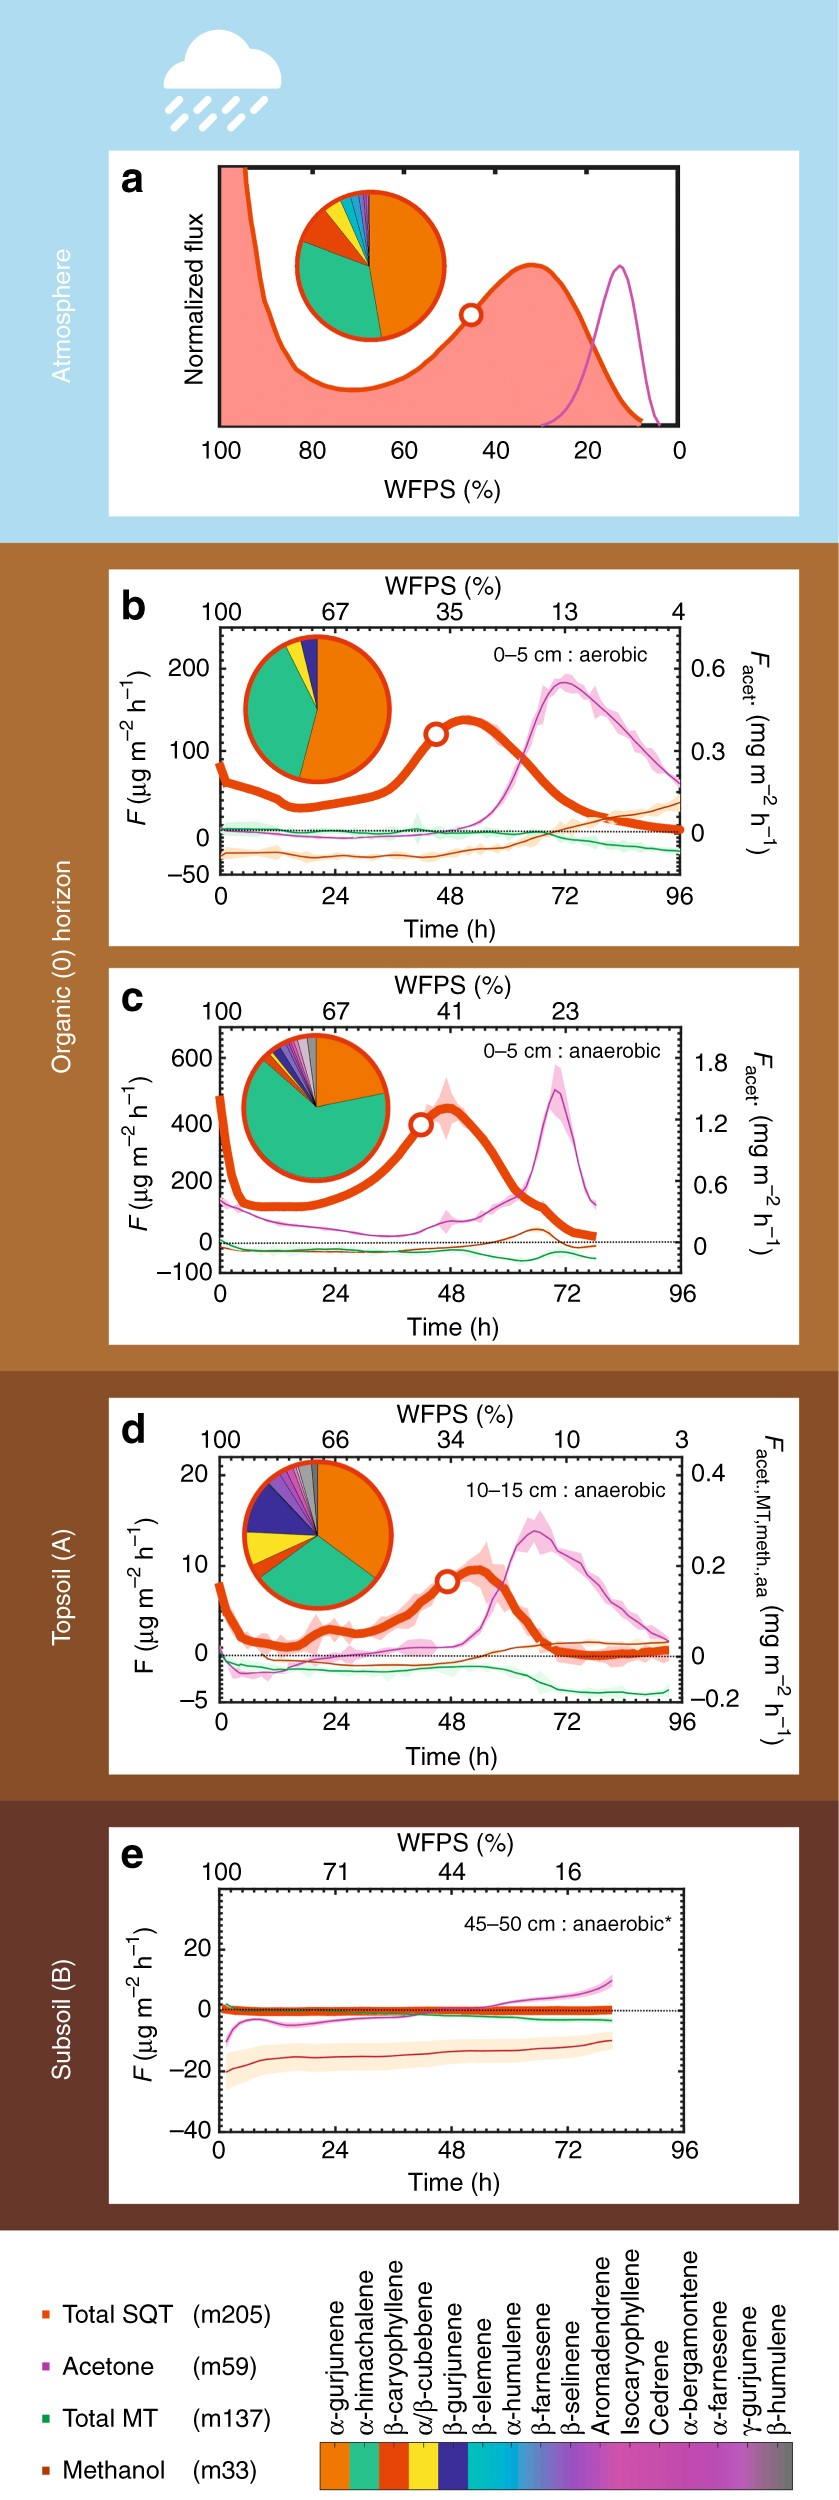 Strong Sesquiterpene Emissions From Amazonian Soils - Nature Communications